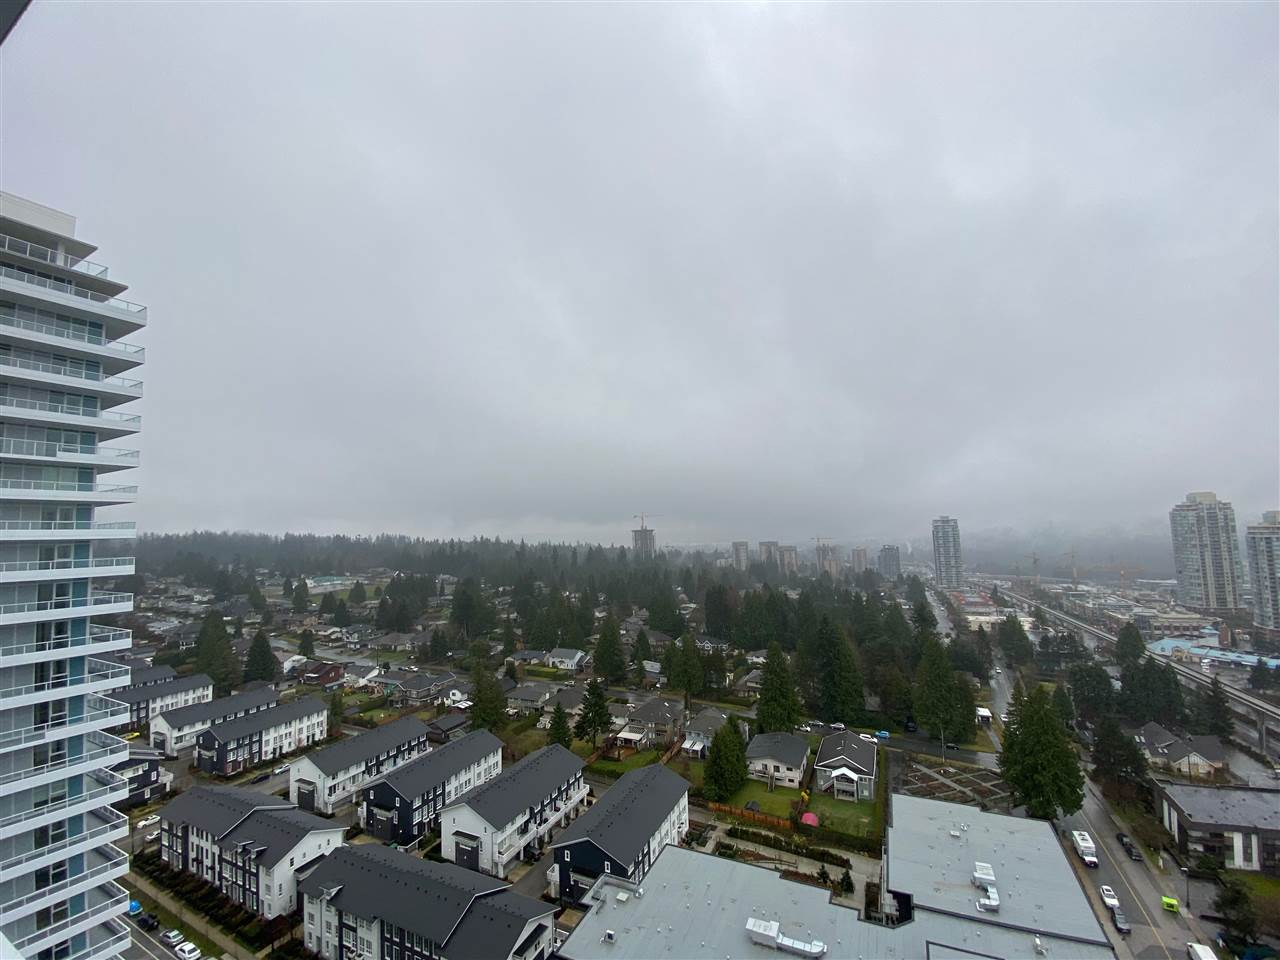 2106 657 WHITING WAY - Coquitlam West Apartment/Condo for sale, 1 Bedroom (R2481418) - #8